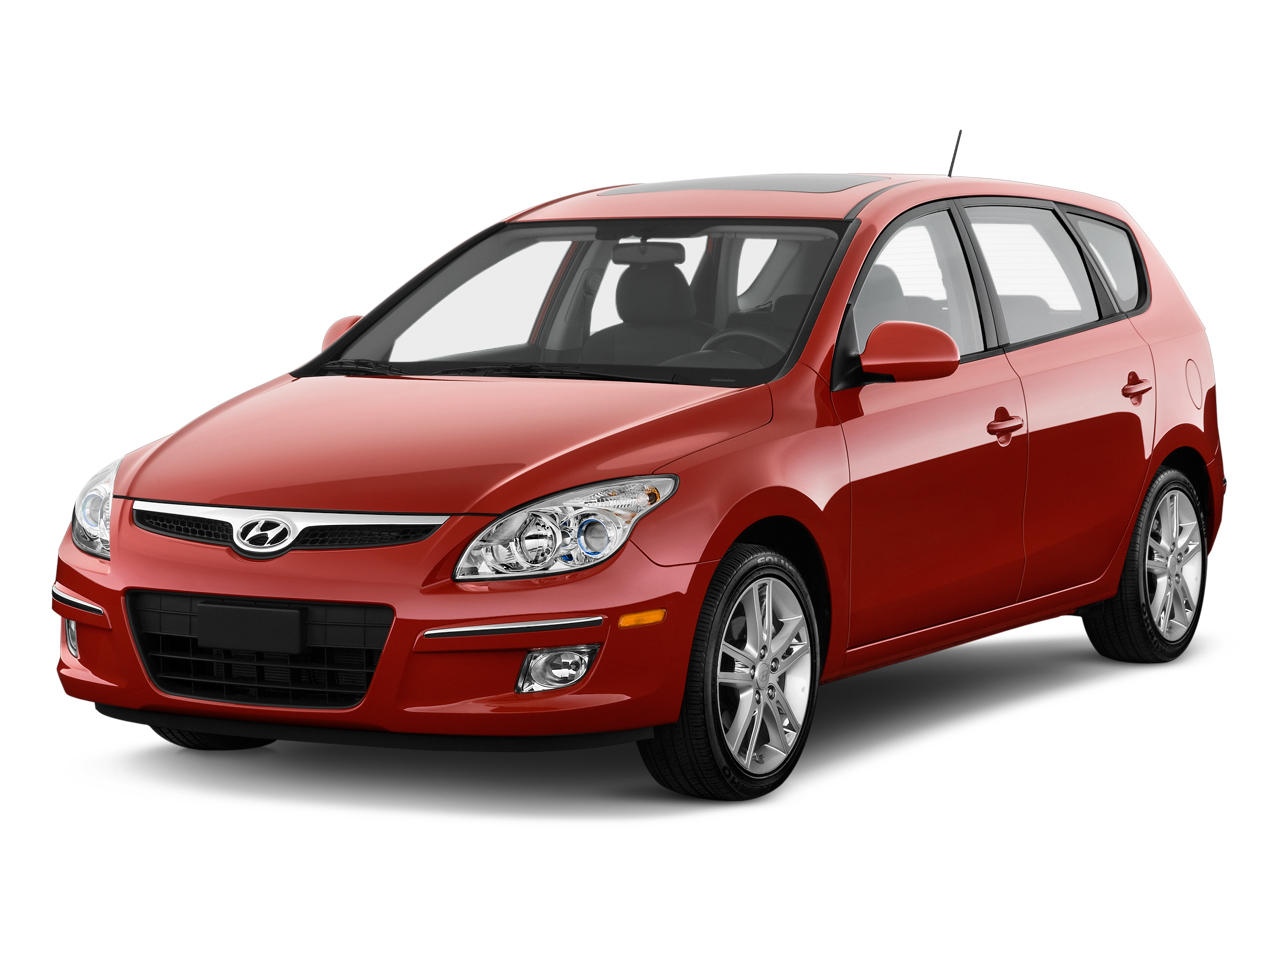 2010 hyundai elantra touring review ratings specs prices and photos the car connection. Black Bedroom Furniture Sets. Home Design Ideas